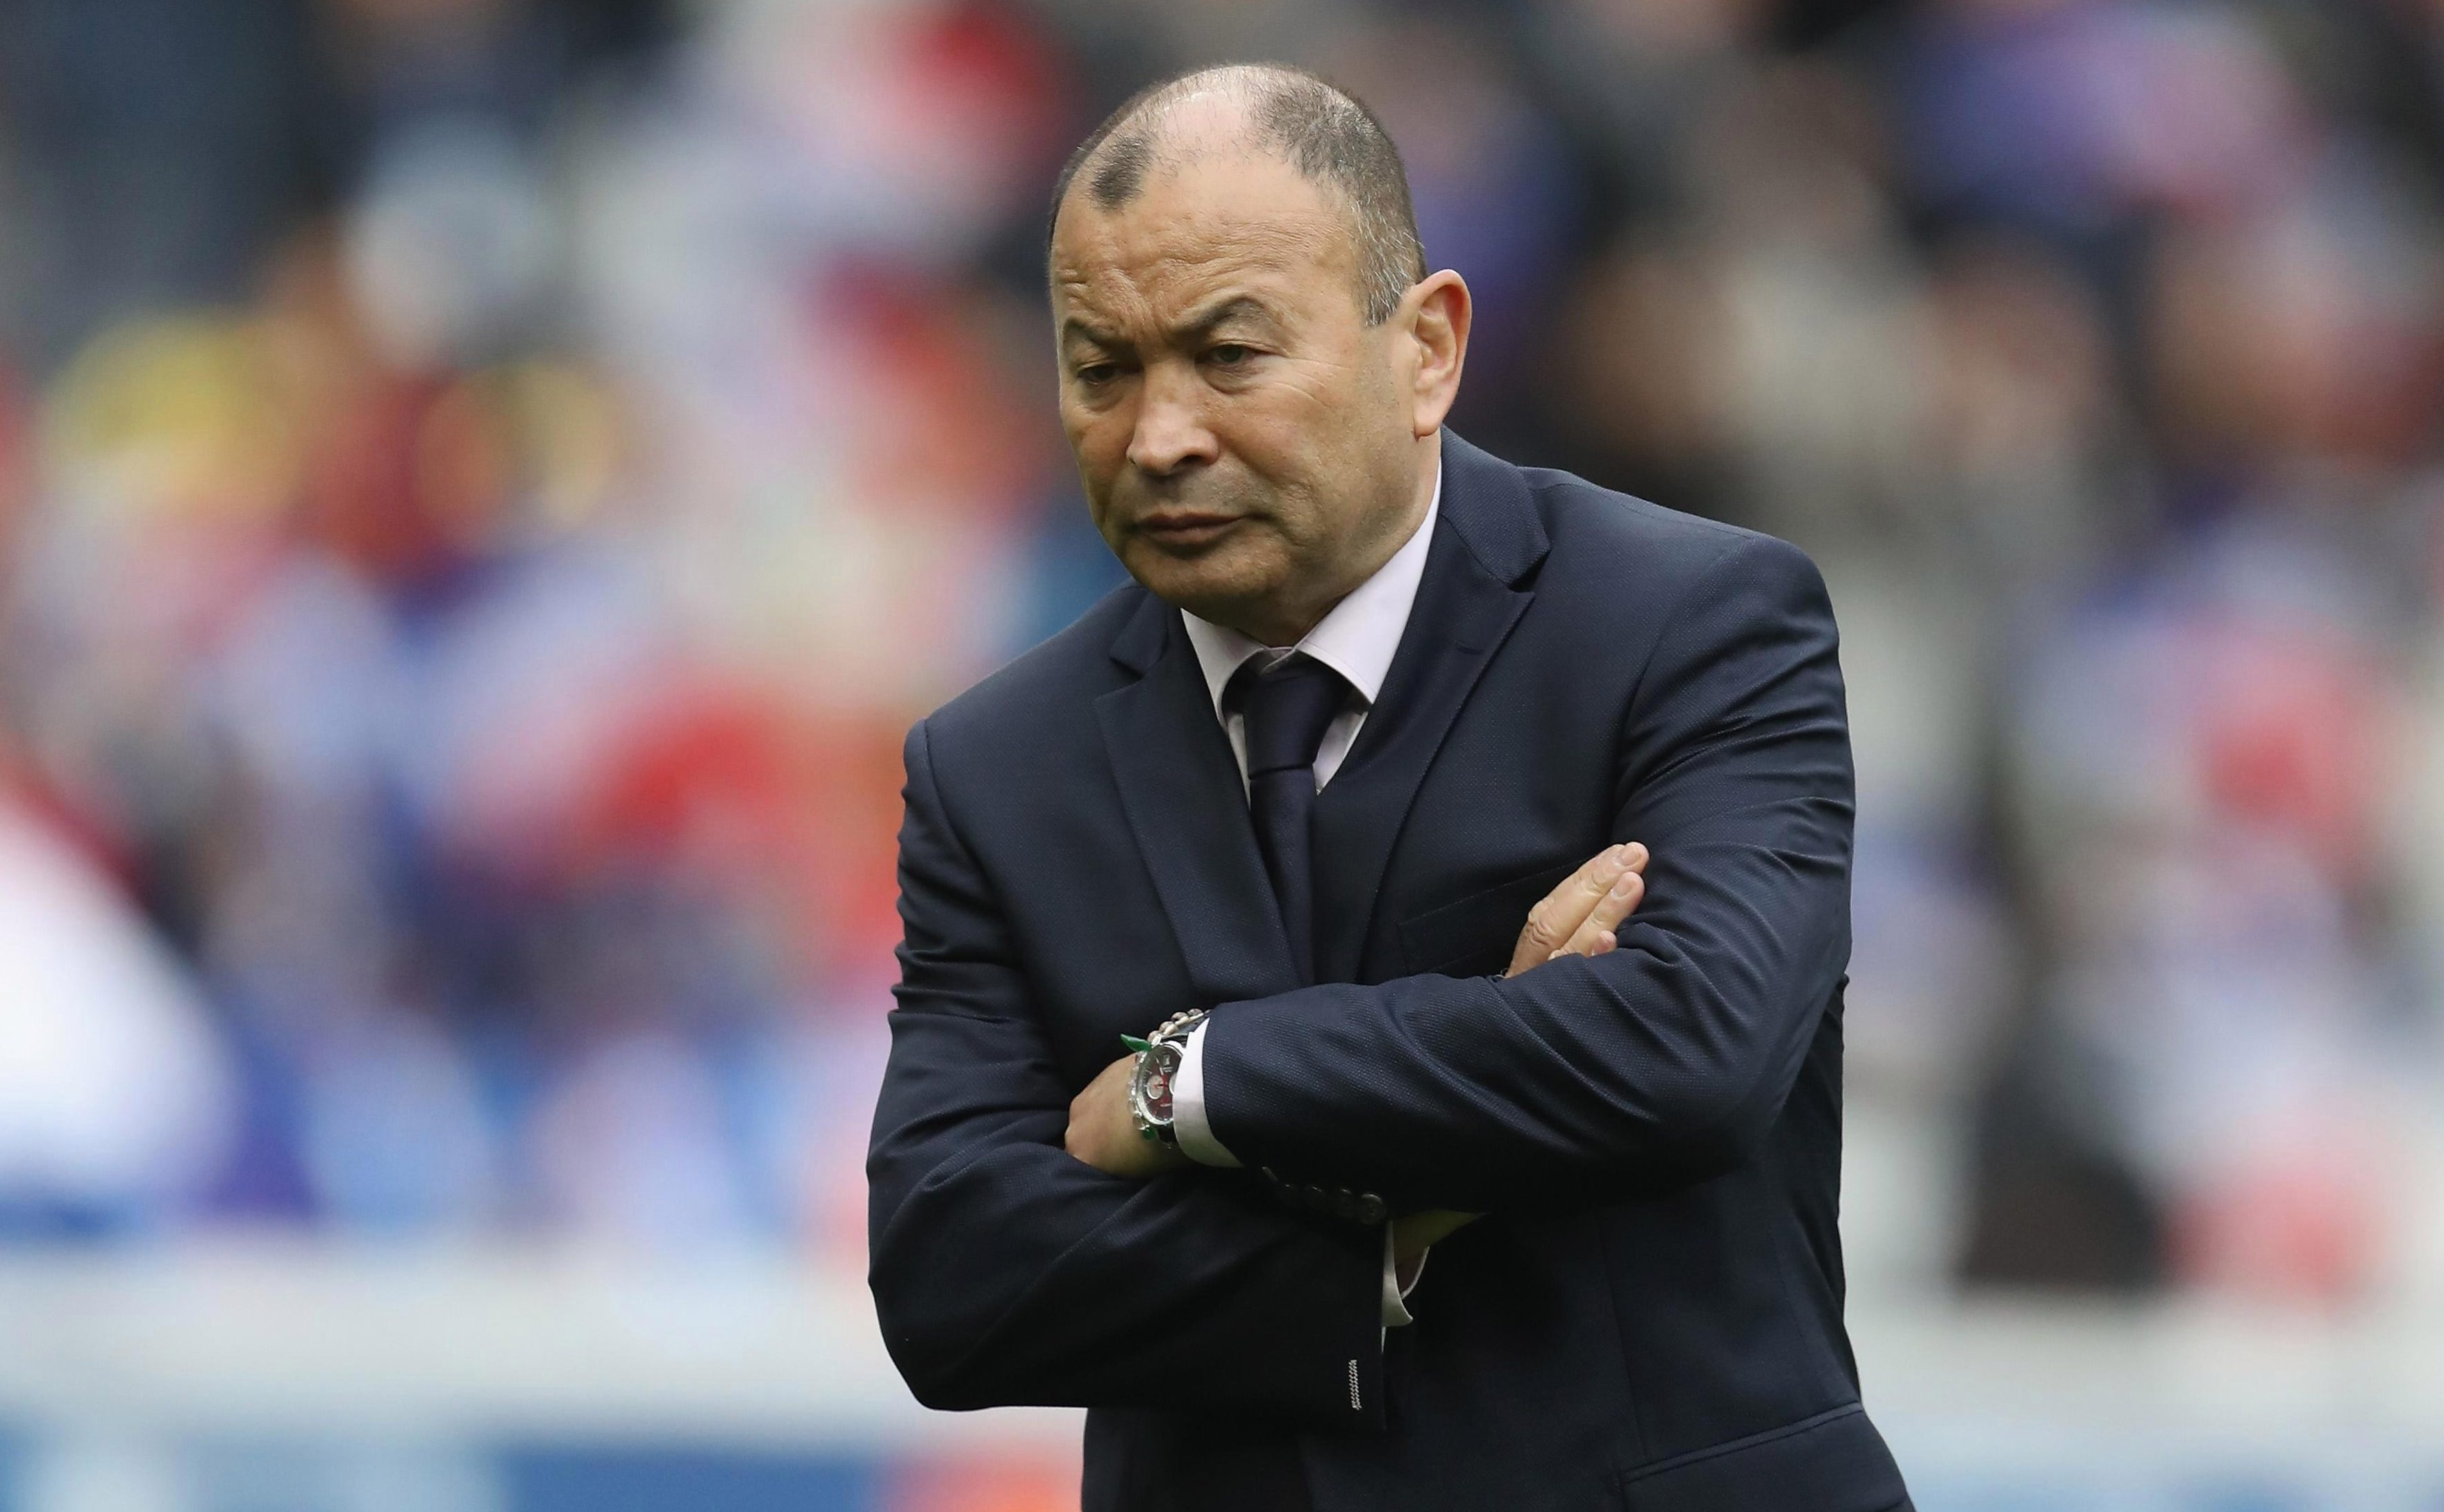 Six Nations 2018: England boss Eddie Jones has had a week to forget… and now faces the biggest game of his managerial career against Ireland